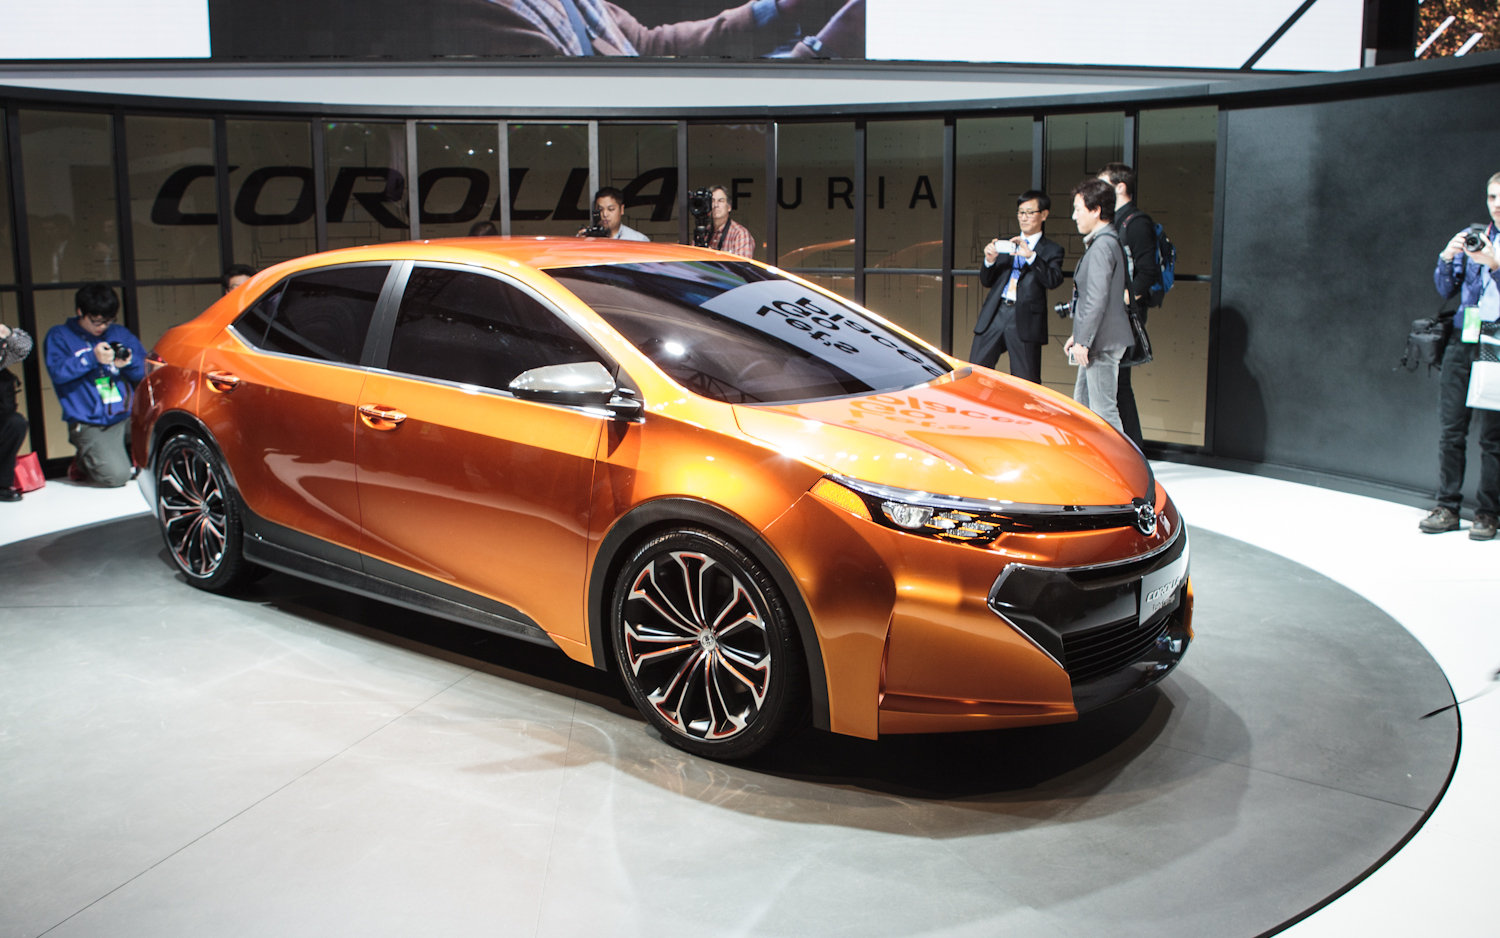 2019 Toyota Corolla Furia Concept photo - 5